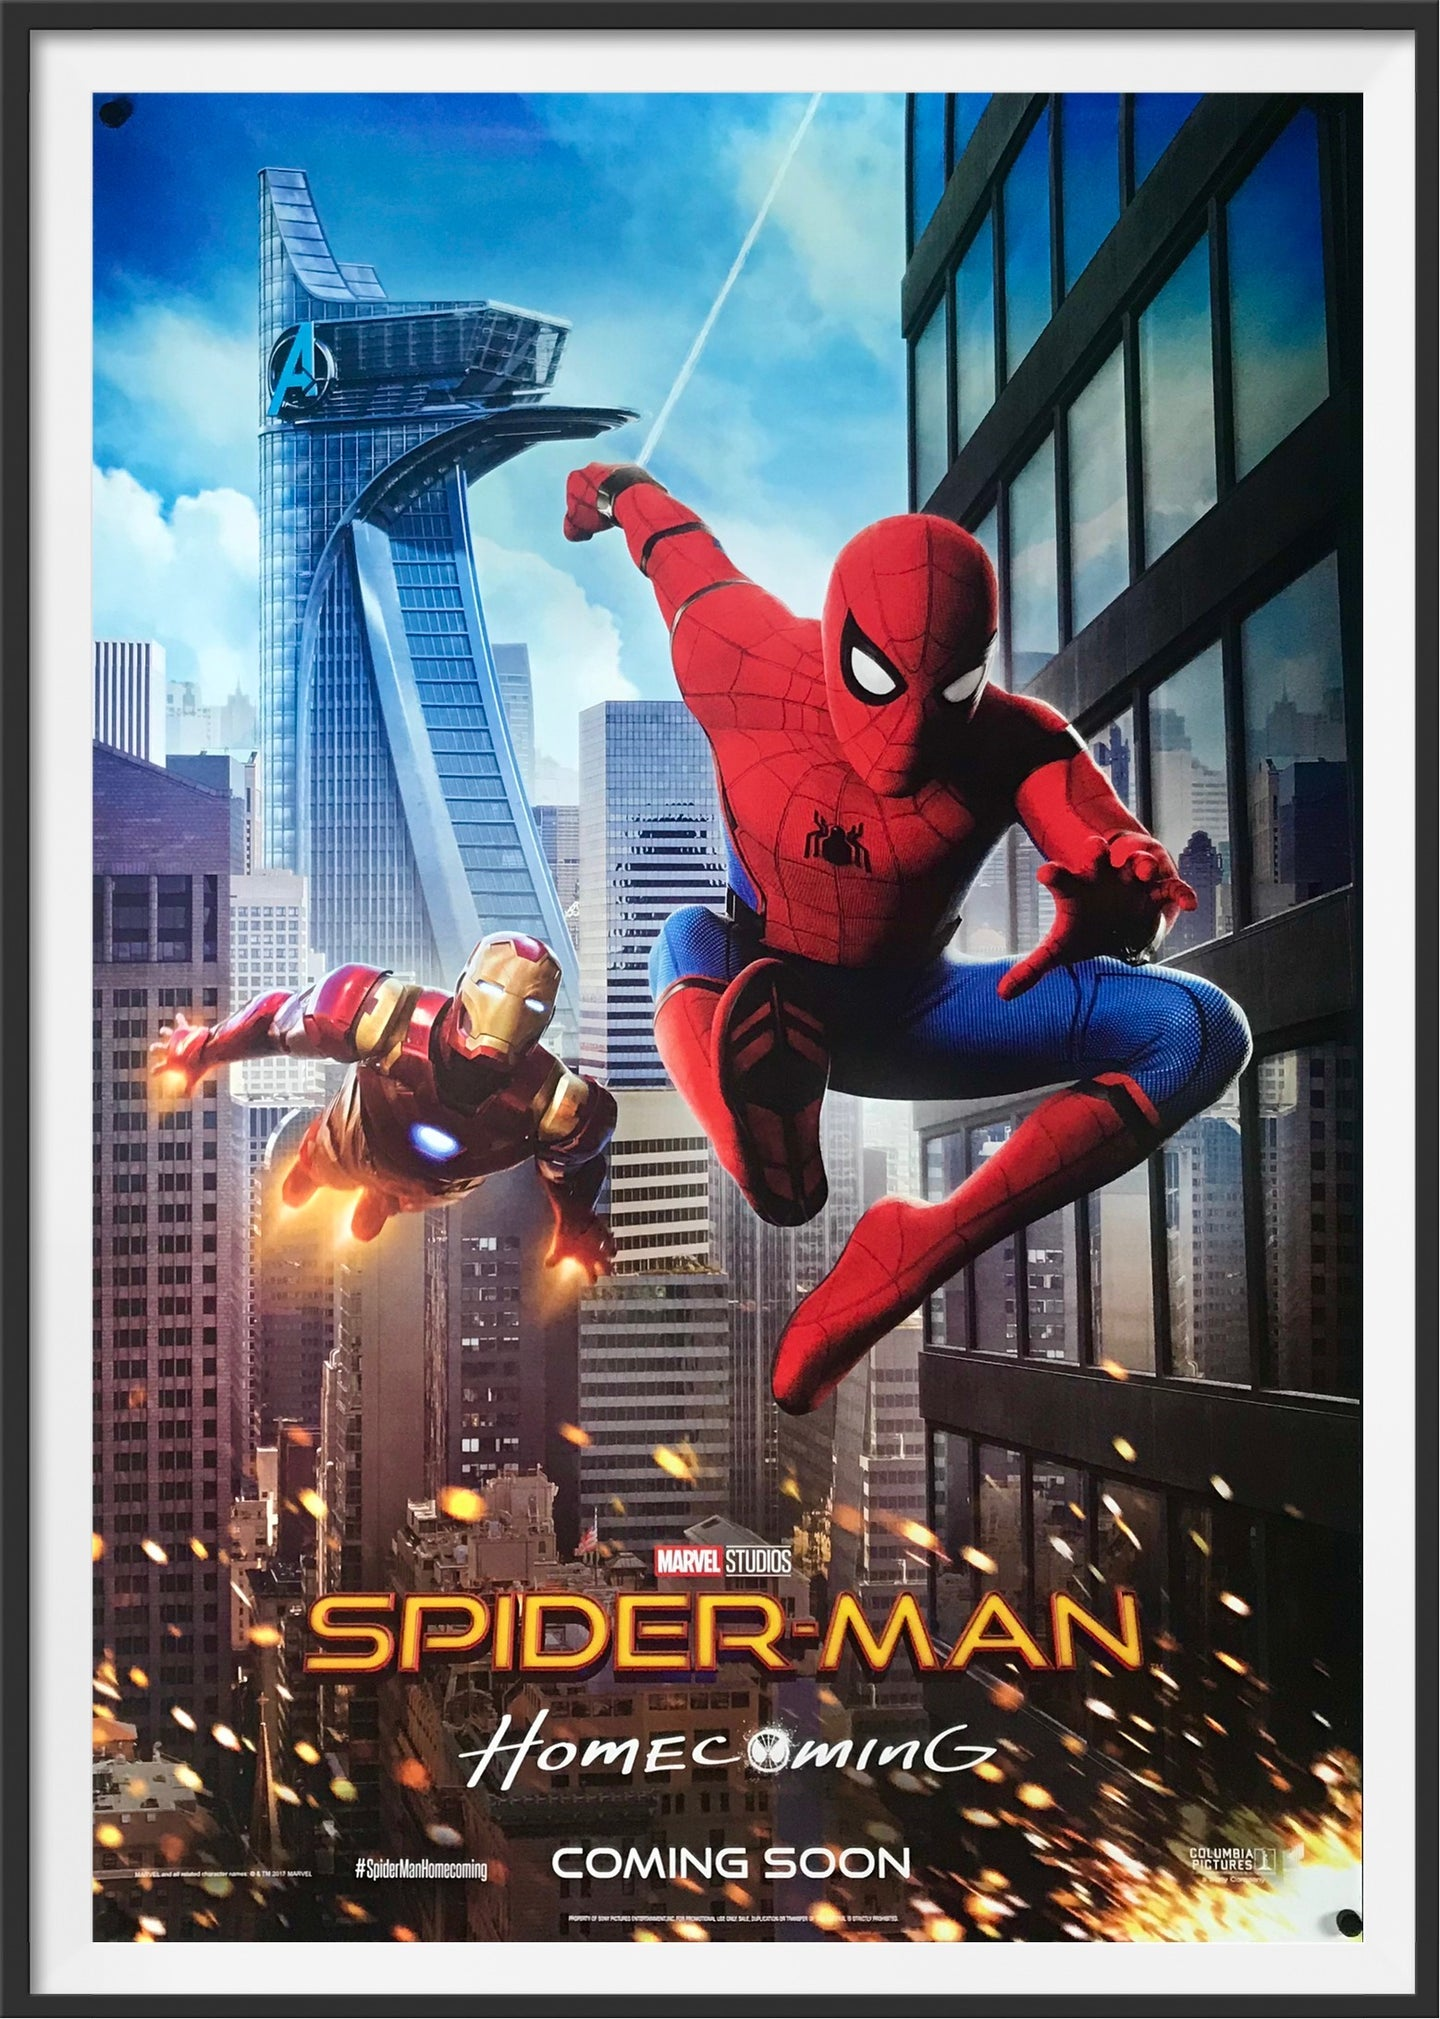 An original movie poster for the Marvel film Spider-Man: Homecoming